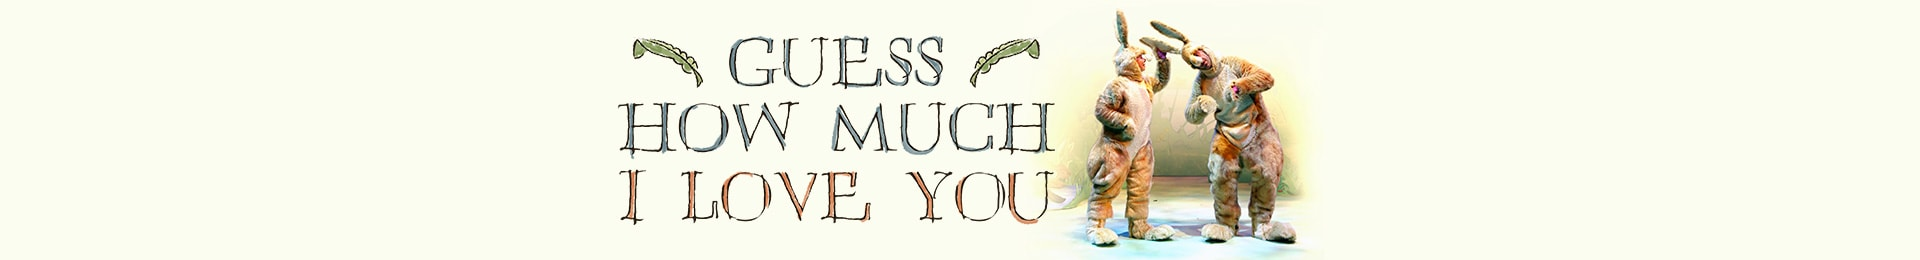 Guess How Much I Love You banner image